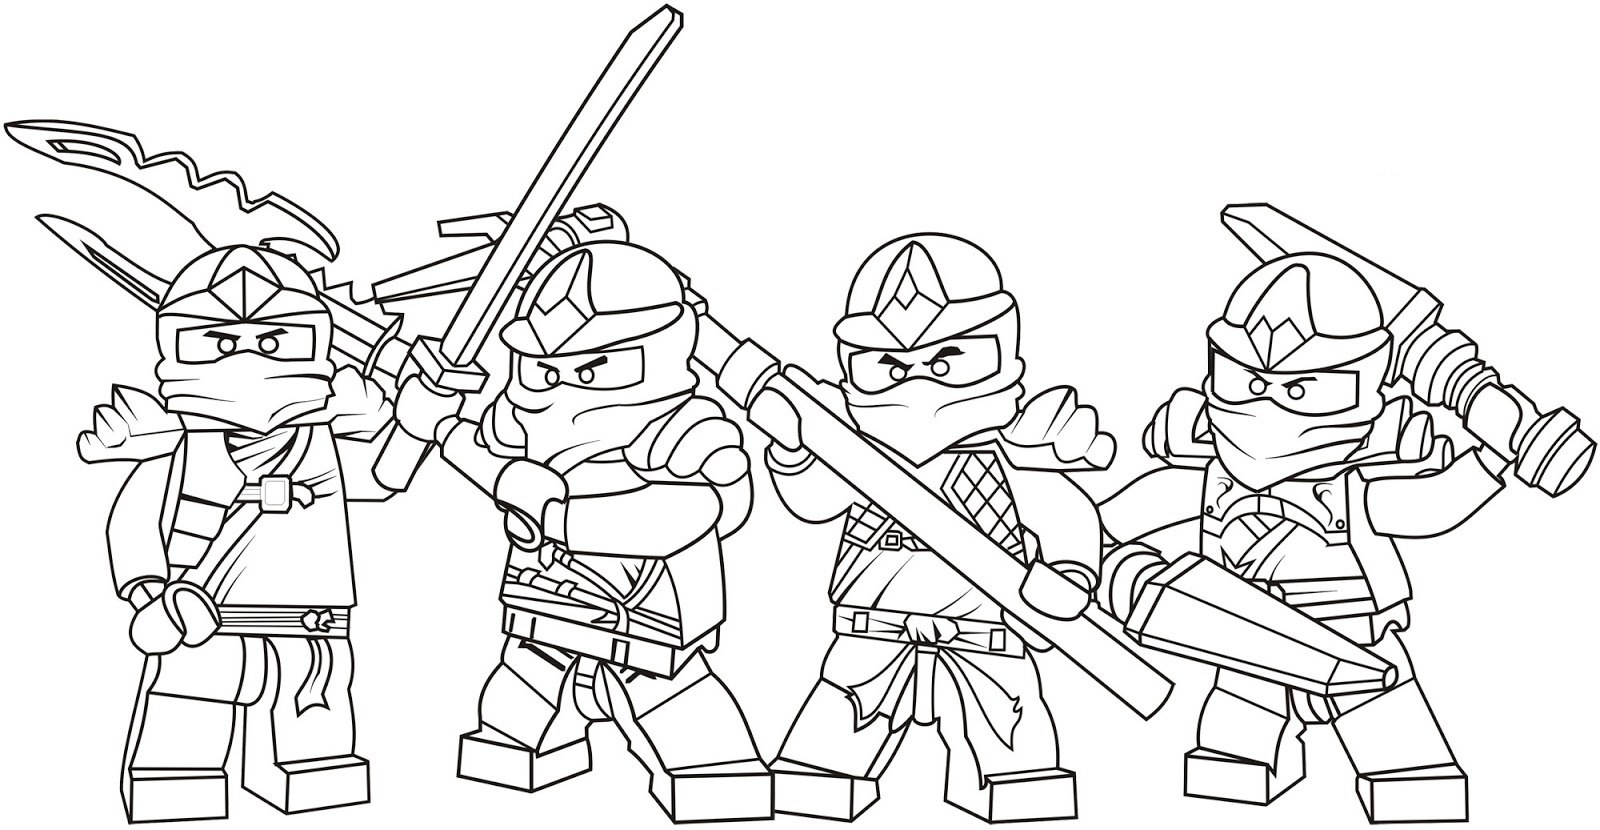 Coloring pages ninjago - Ninjago Coloring Pages